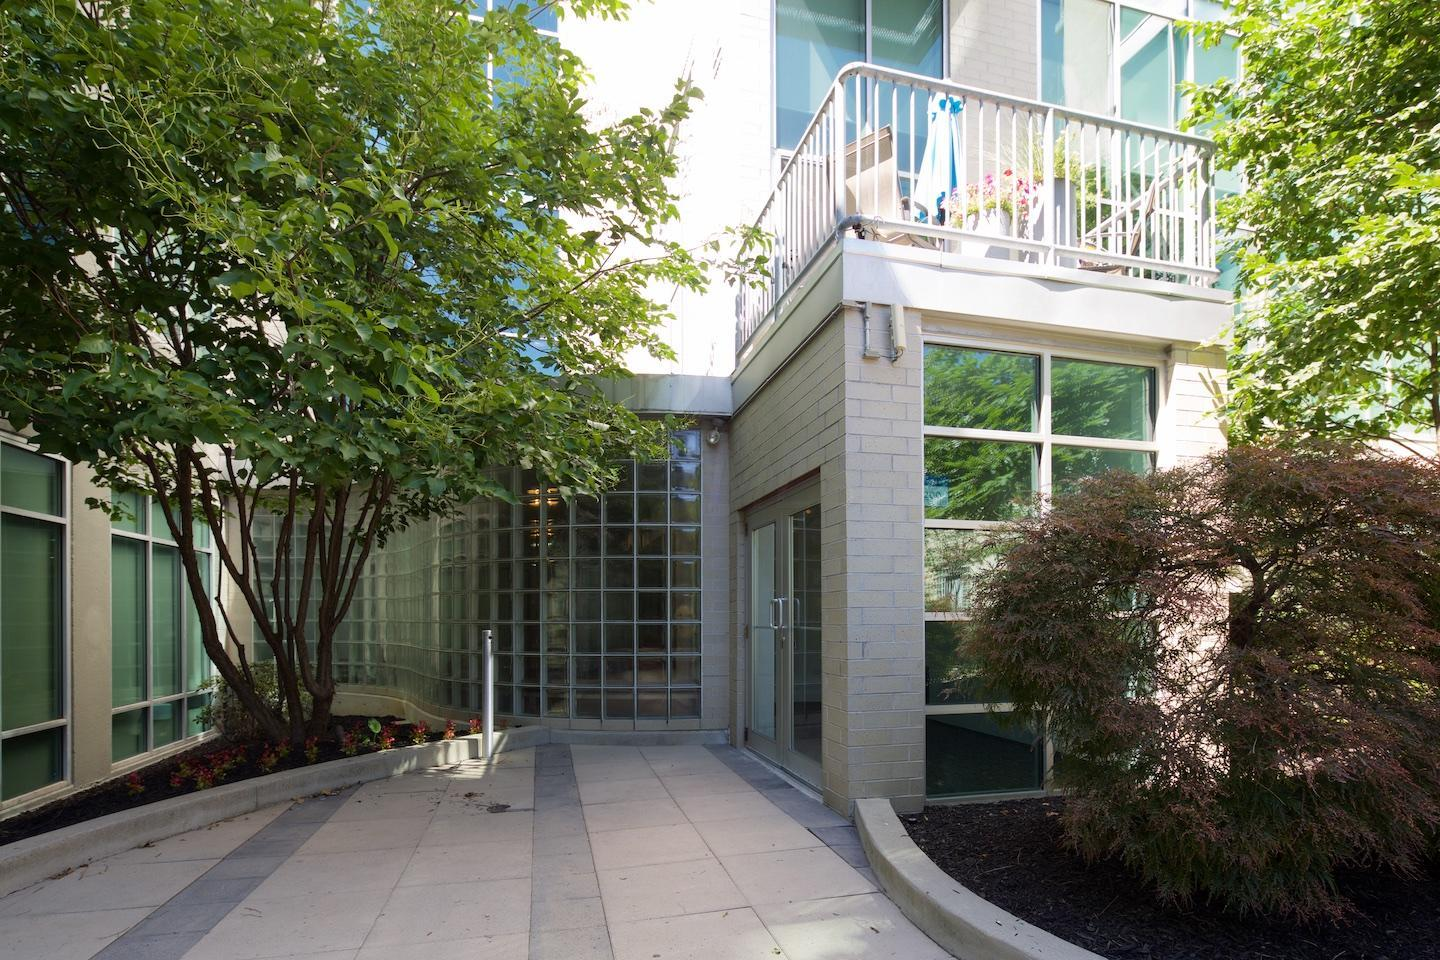 60 Spring Street, Columbus, Ohio 43215, 1 Bedroom Bedrooms, ,1 BathroomBathrooms,Residential,For Sale,Spring,220019057